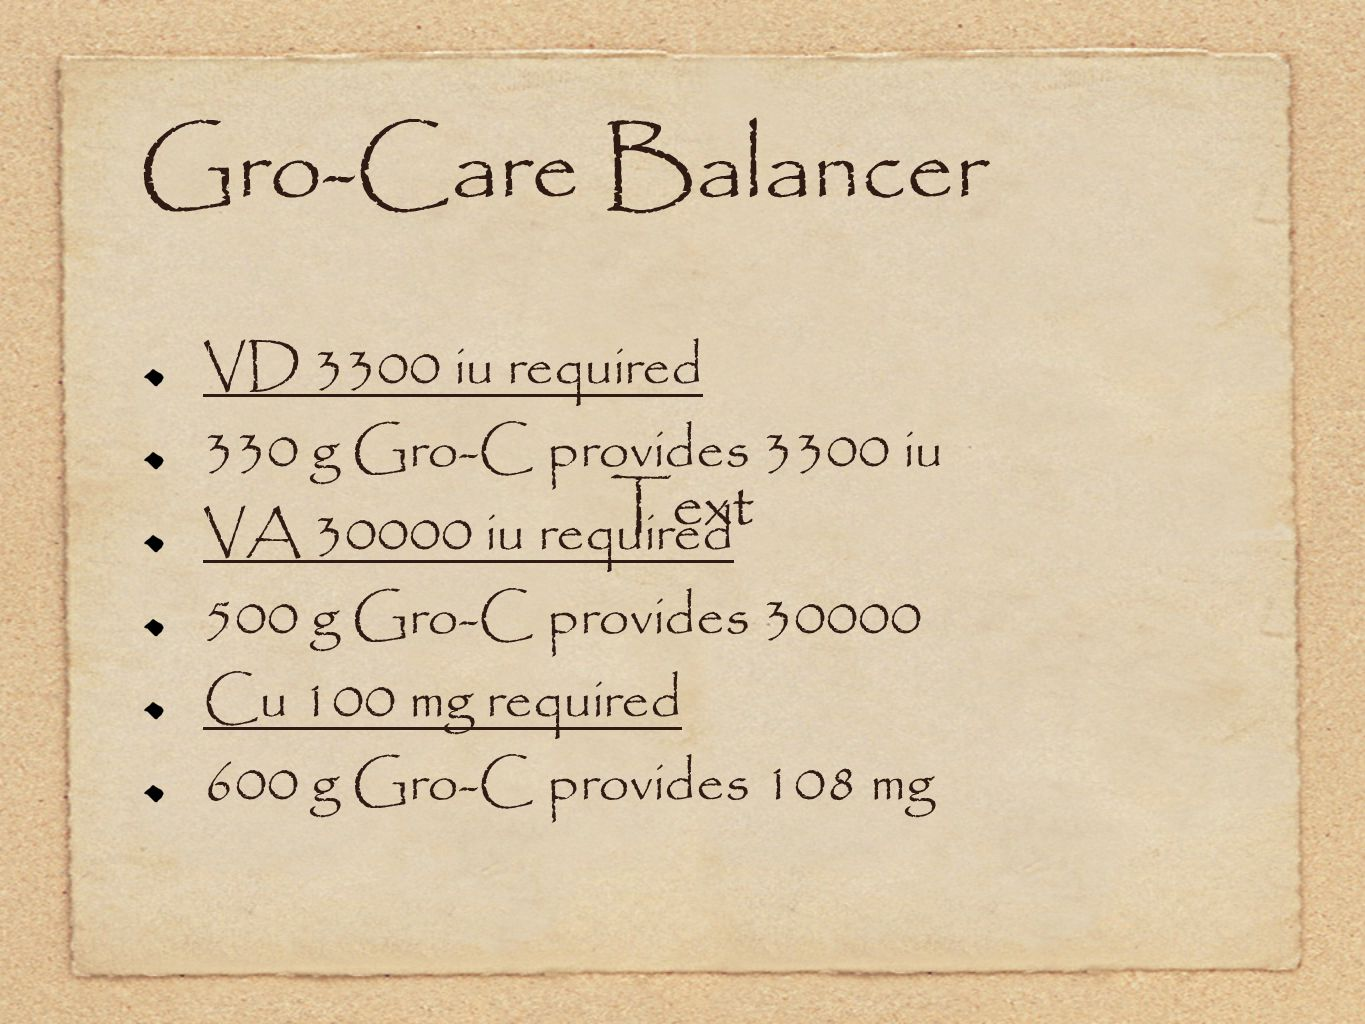 Gro-Care Balancer VD 3300 iu required 330 g Gro-C provides 3300 iu VA 30000 iu required 500 g Gro-C provides 30000 Cu 100 mg required 600 g Gro-C prov